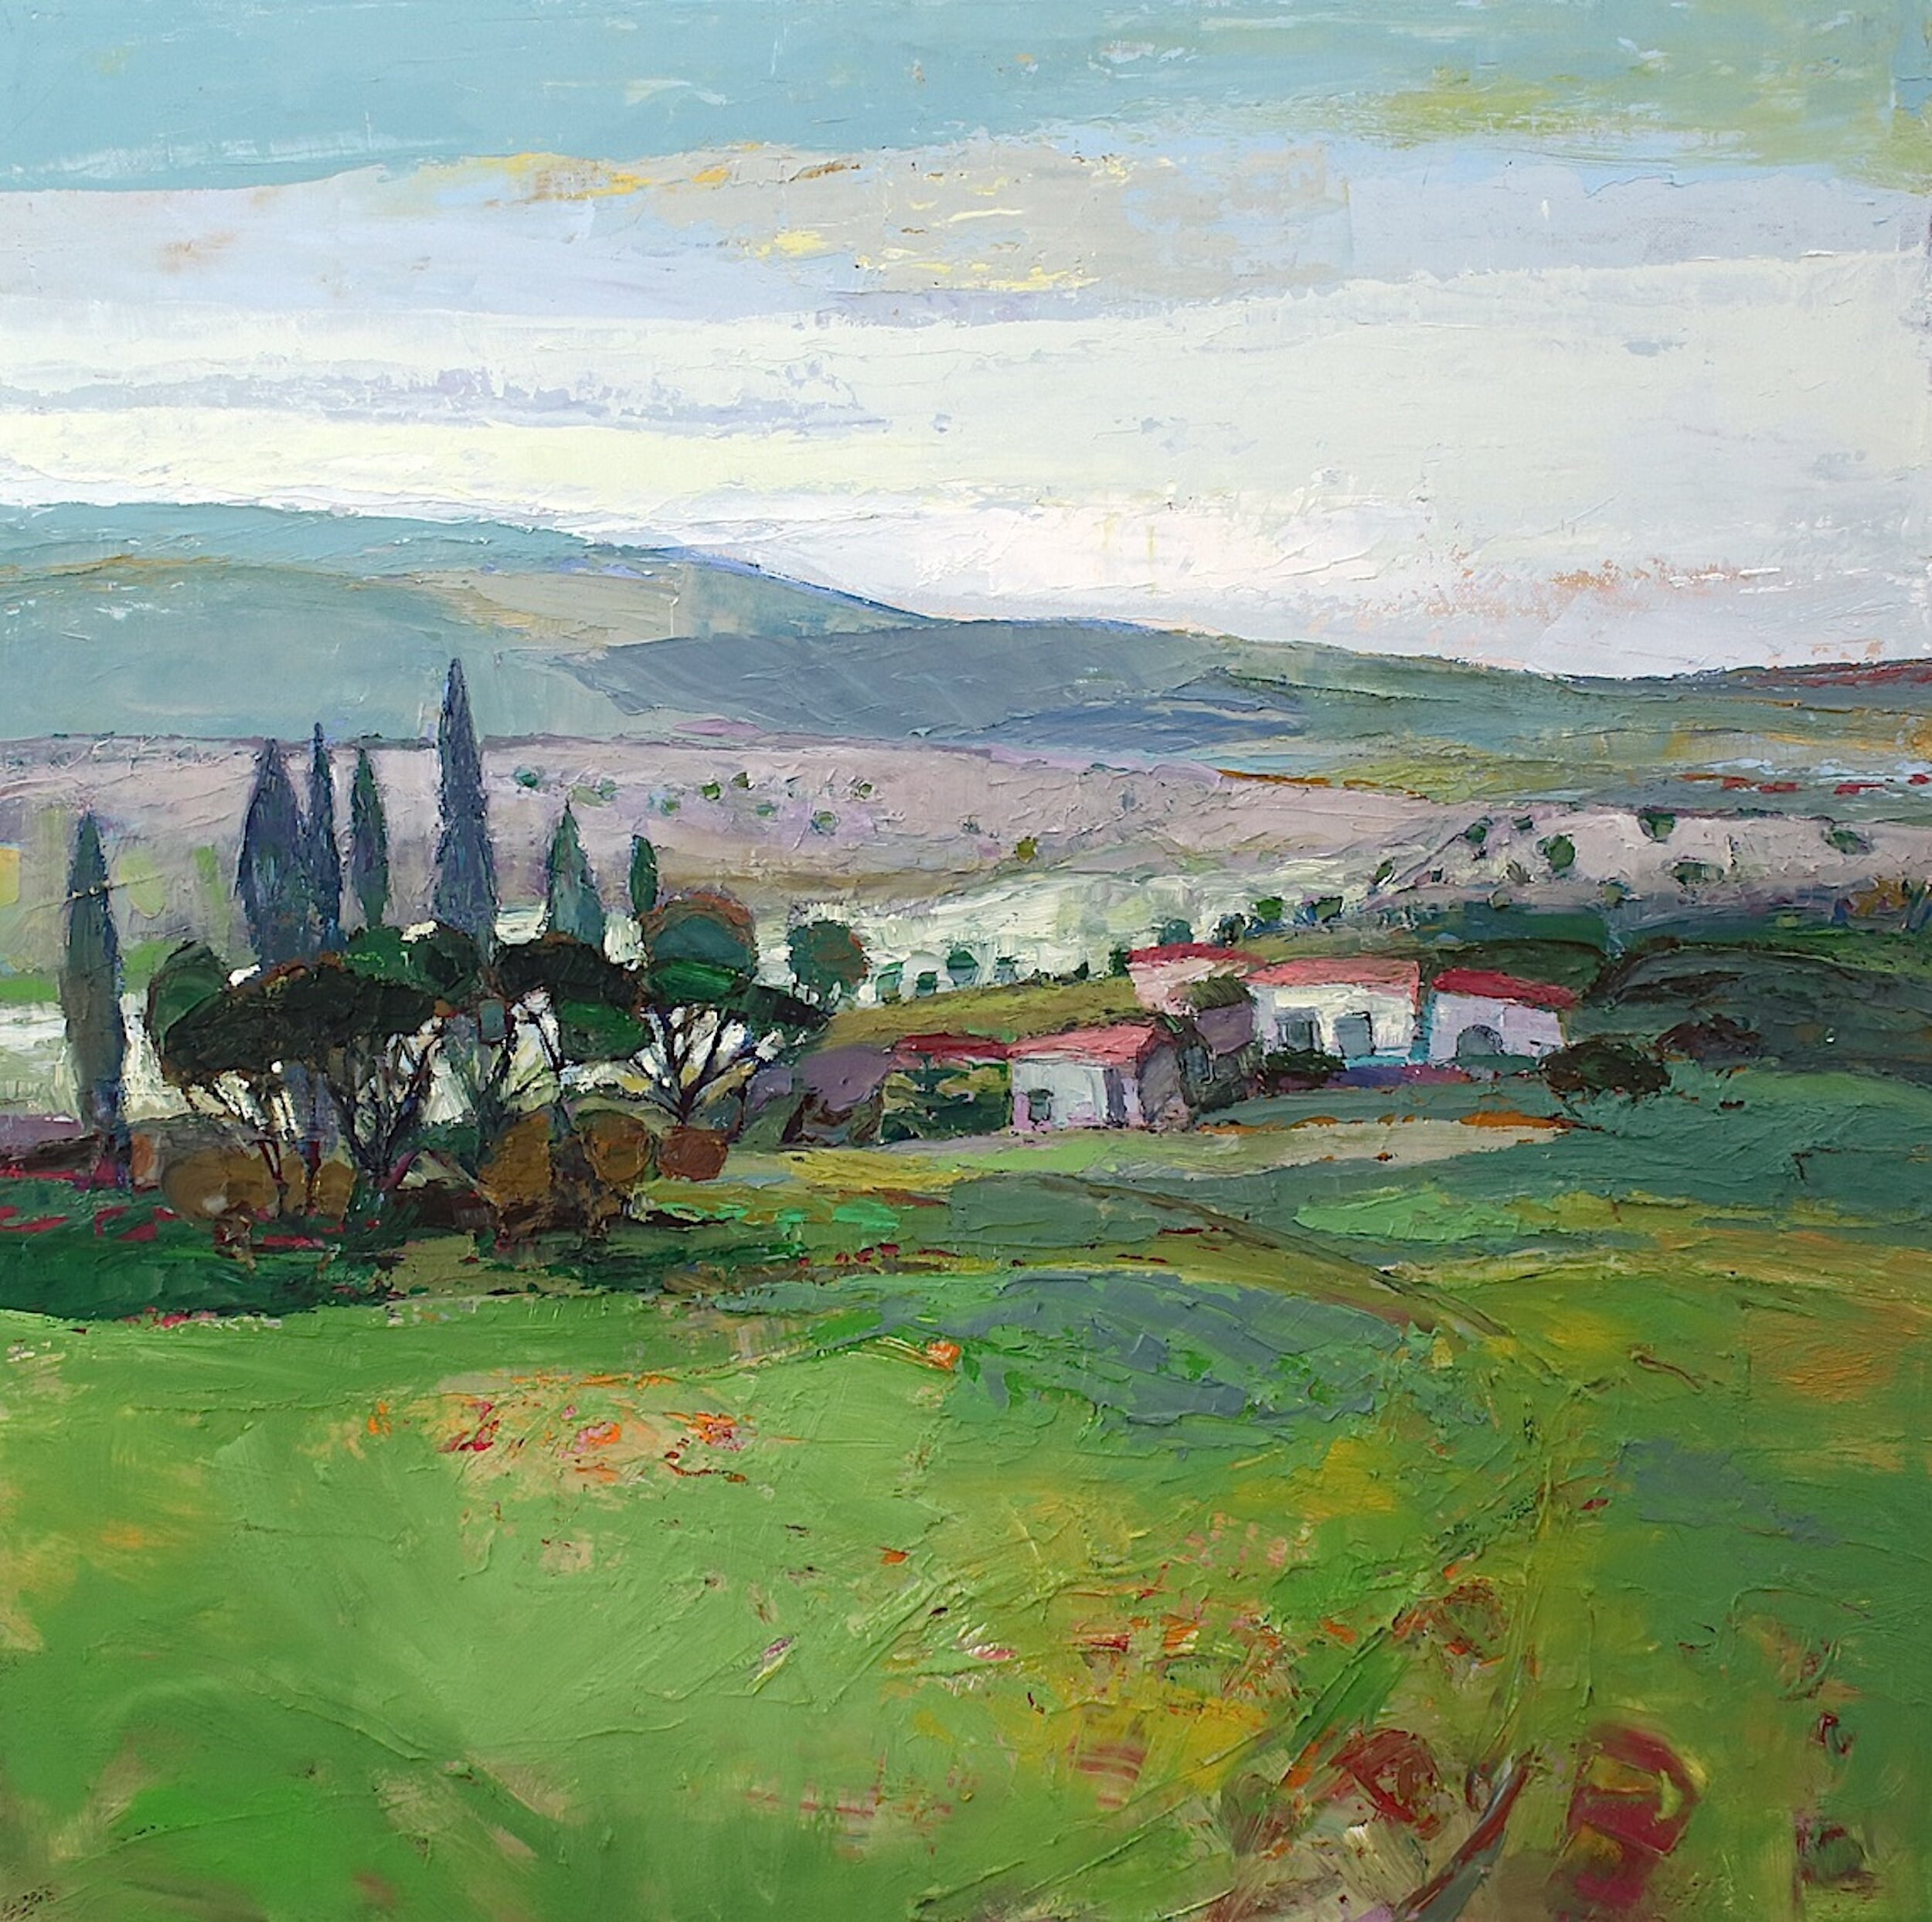 Title: Olives and Cypress  Size: 22x24in  Medium: Oil on Canvas  Price: £3750